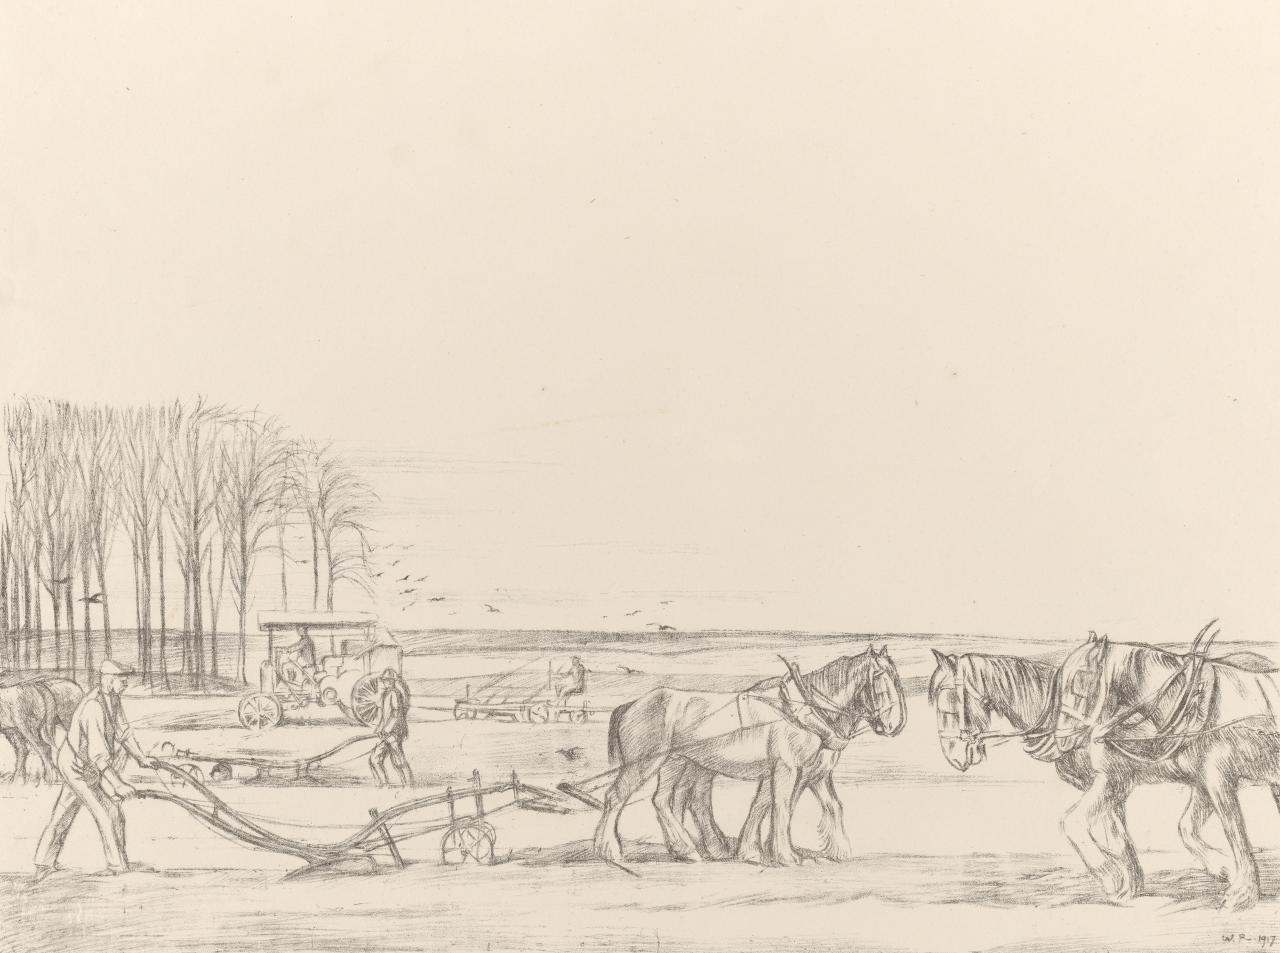 Ploughing